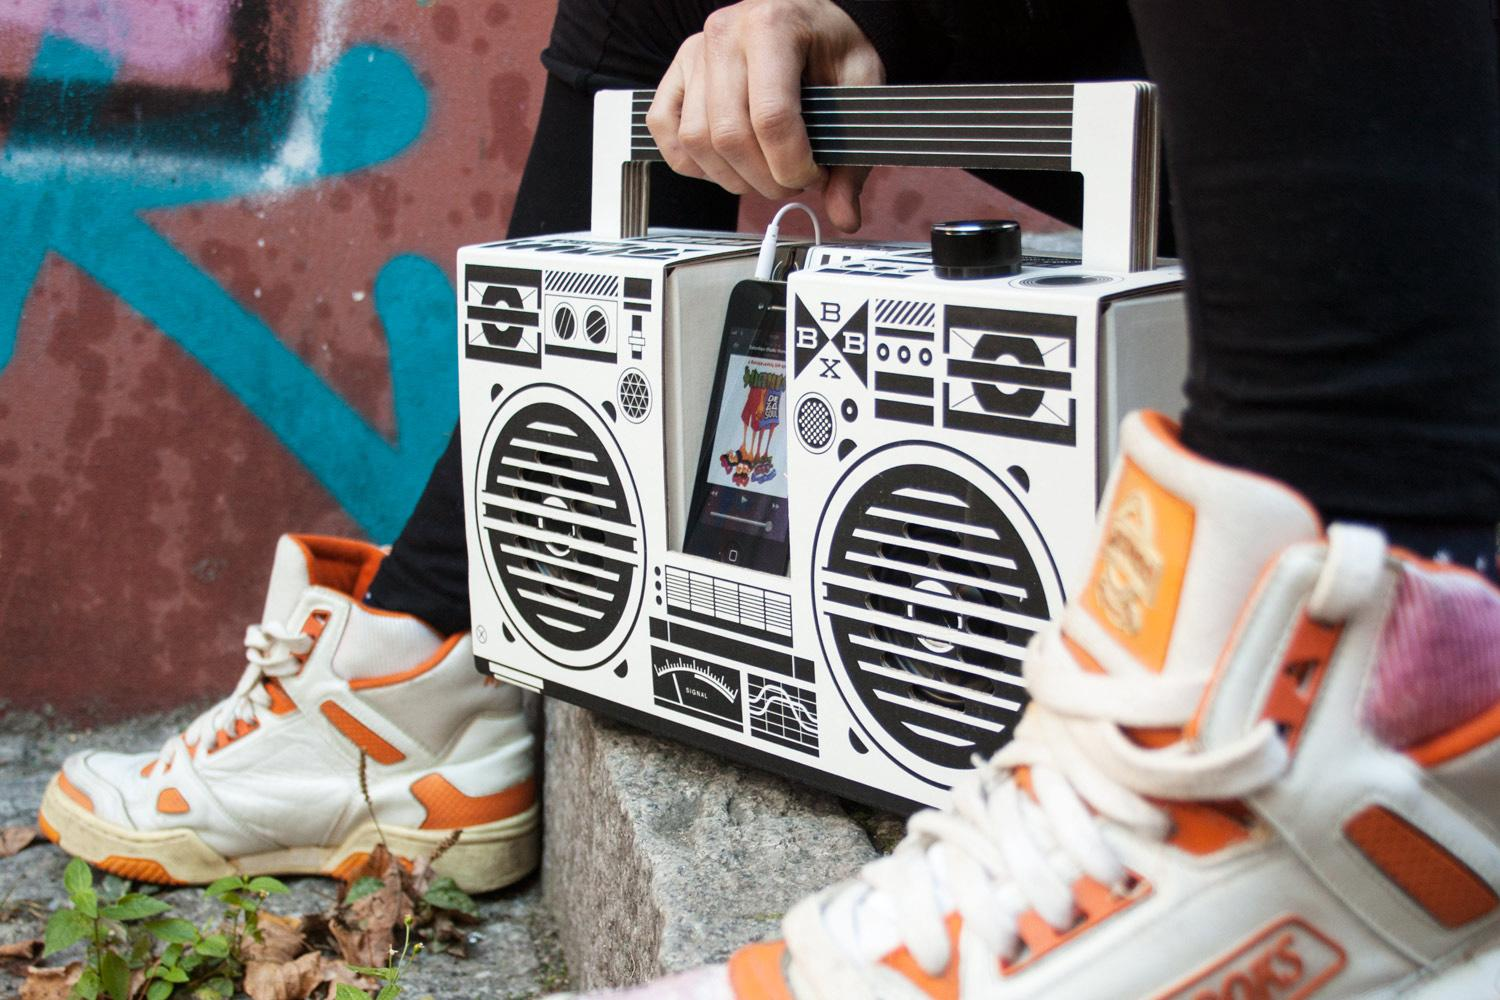 berlin boombox bbbx20 mood sneakers edit